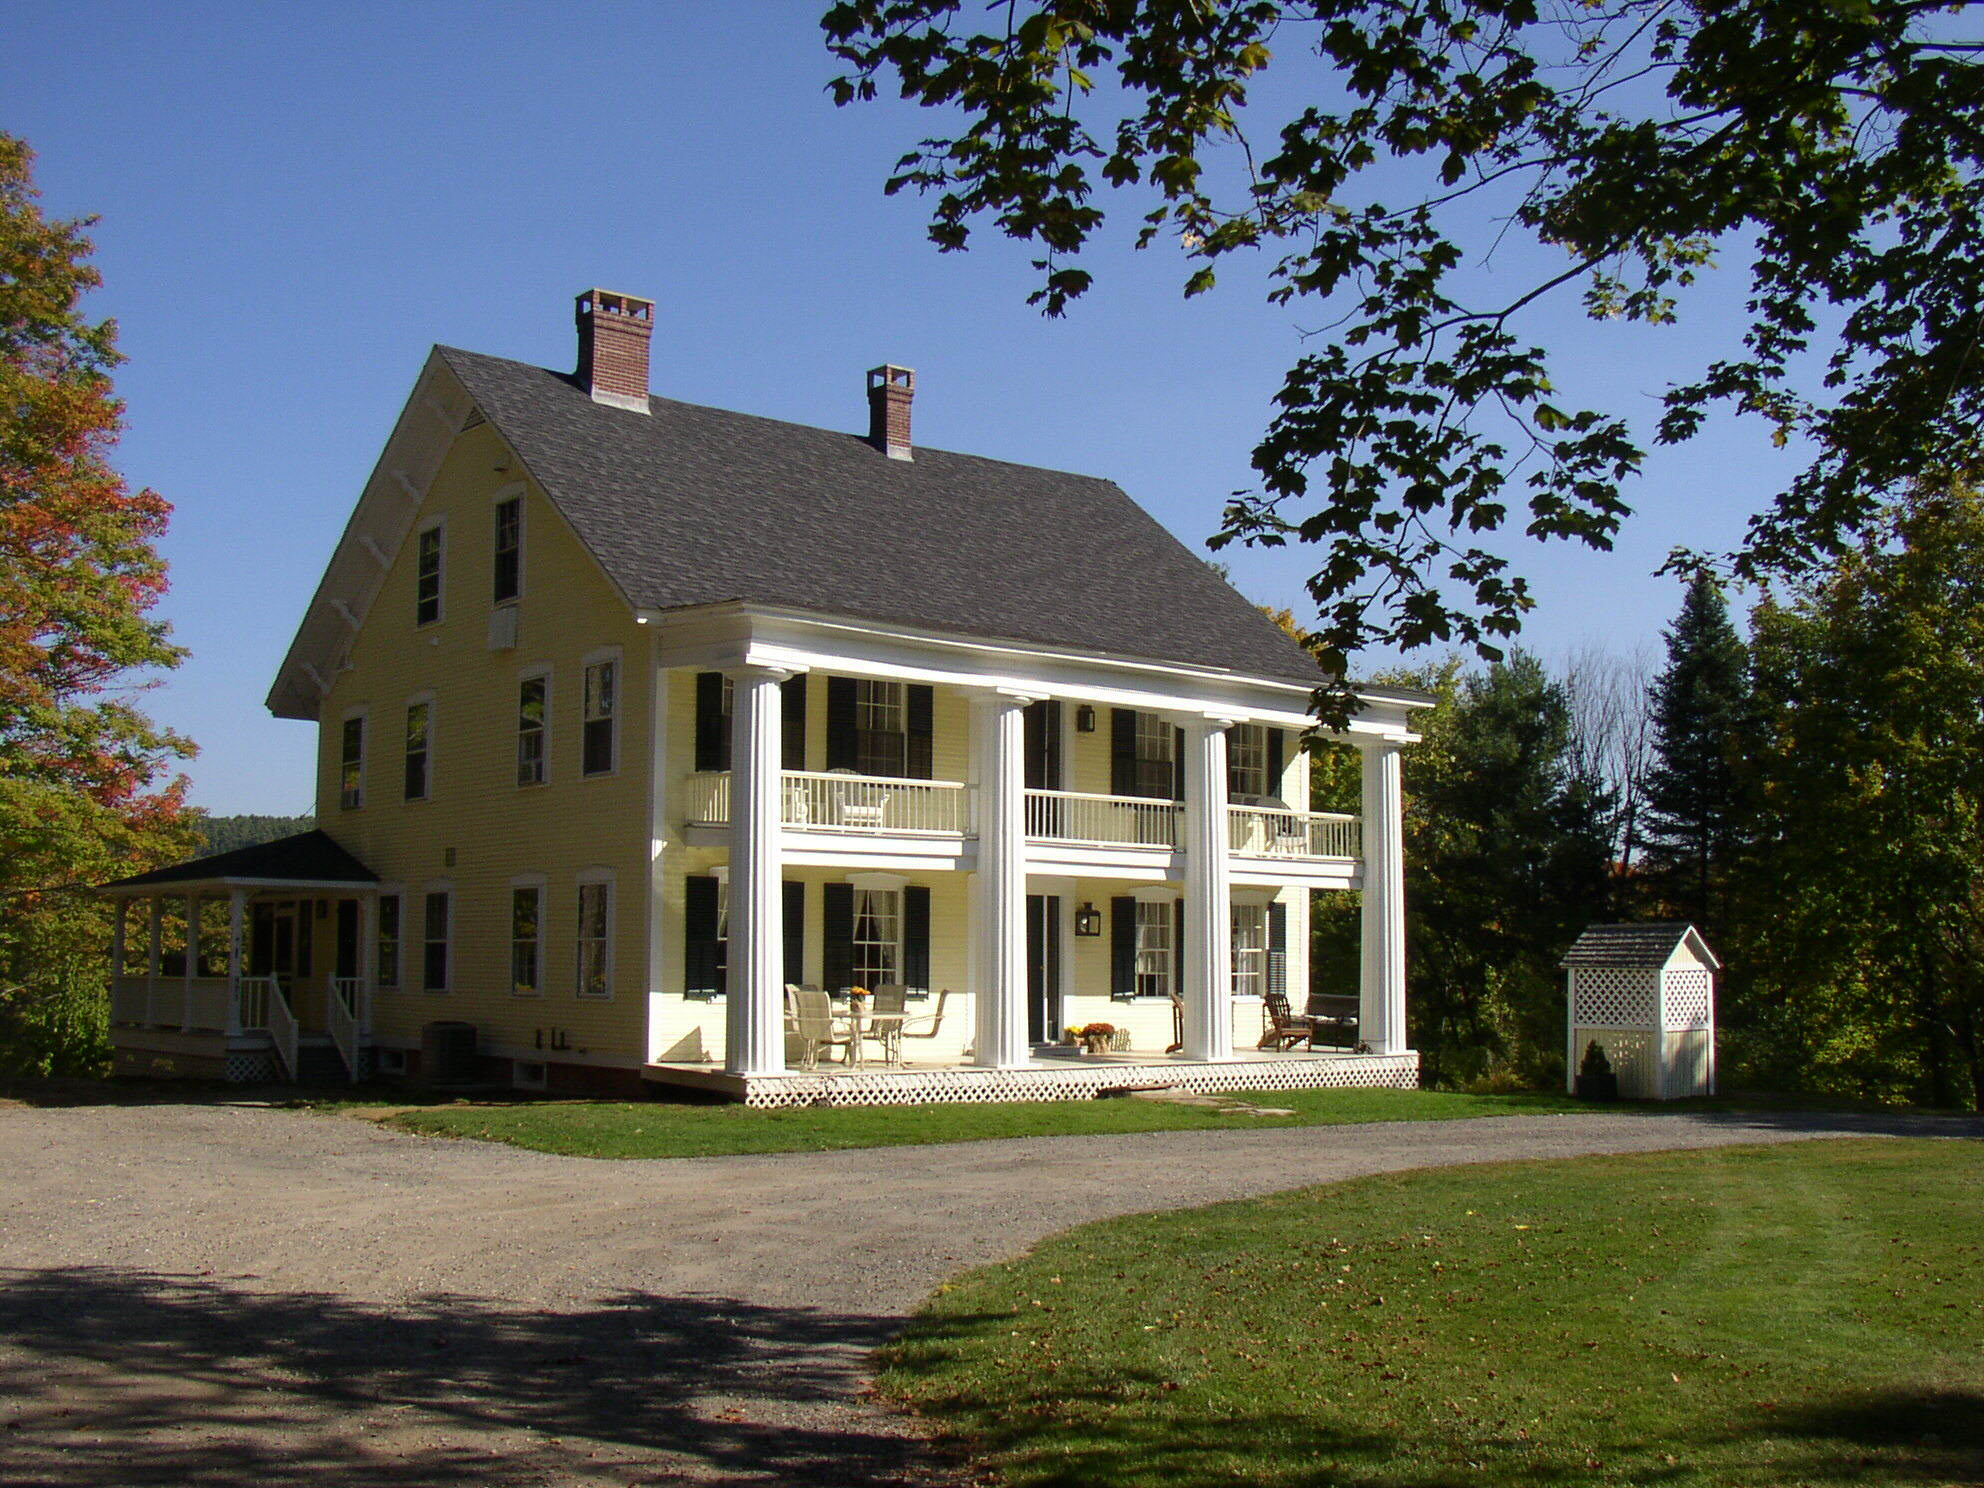 General Amos Shepard Bed and Breakfast